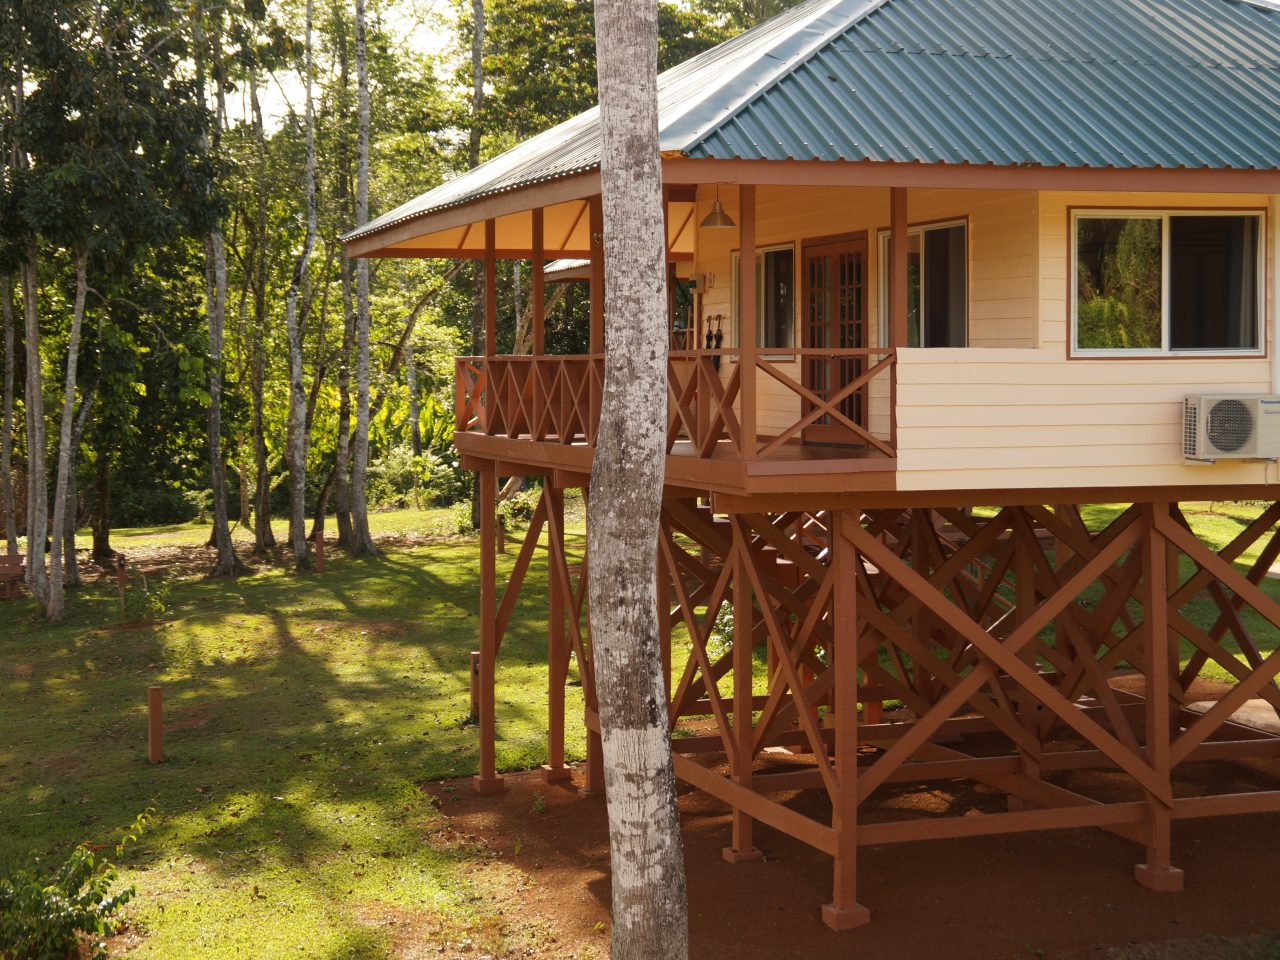 kabalebo nature resort suriname